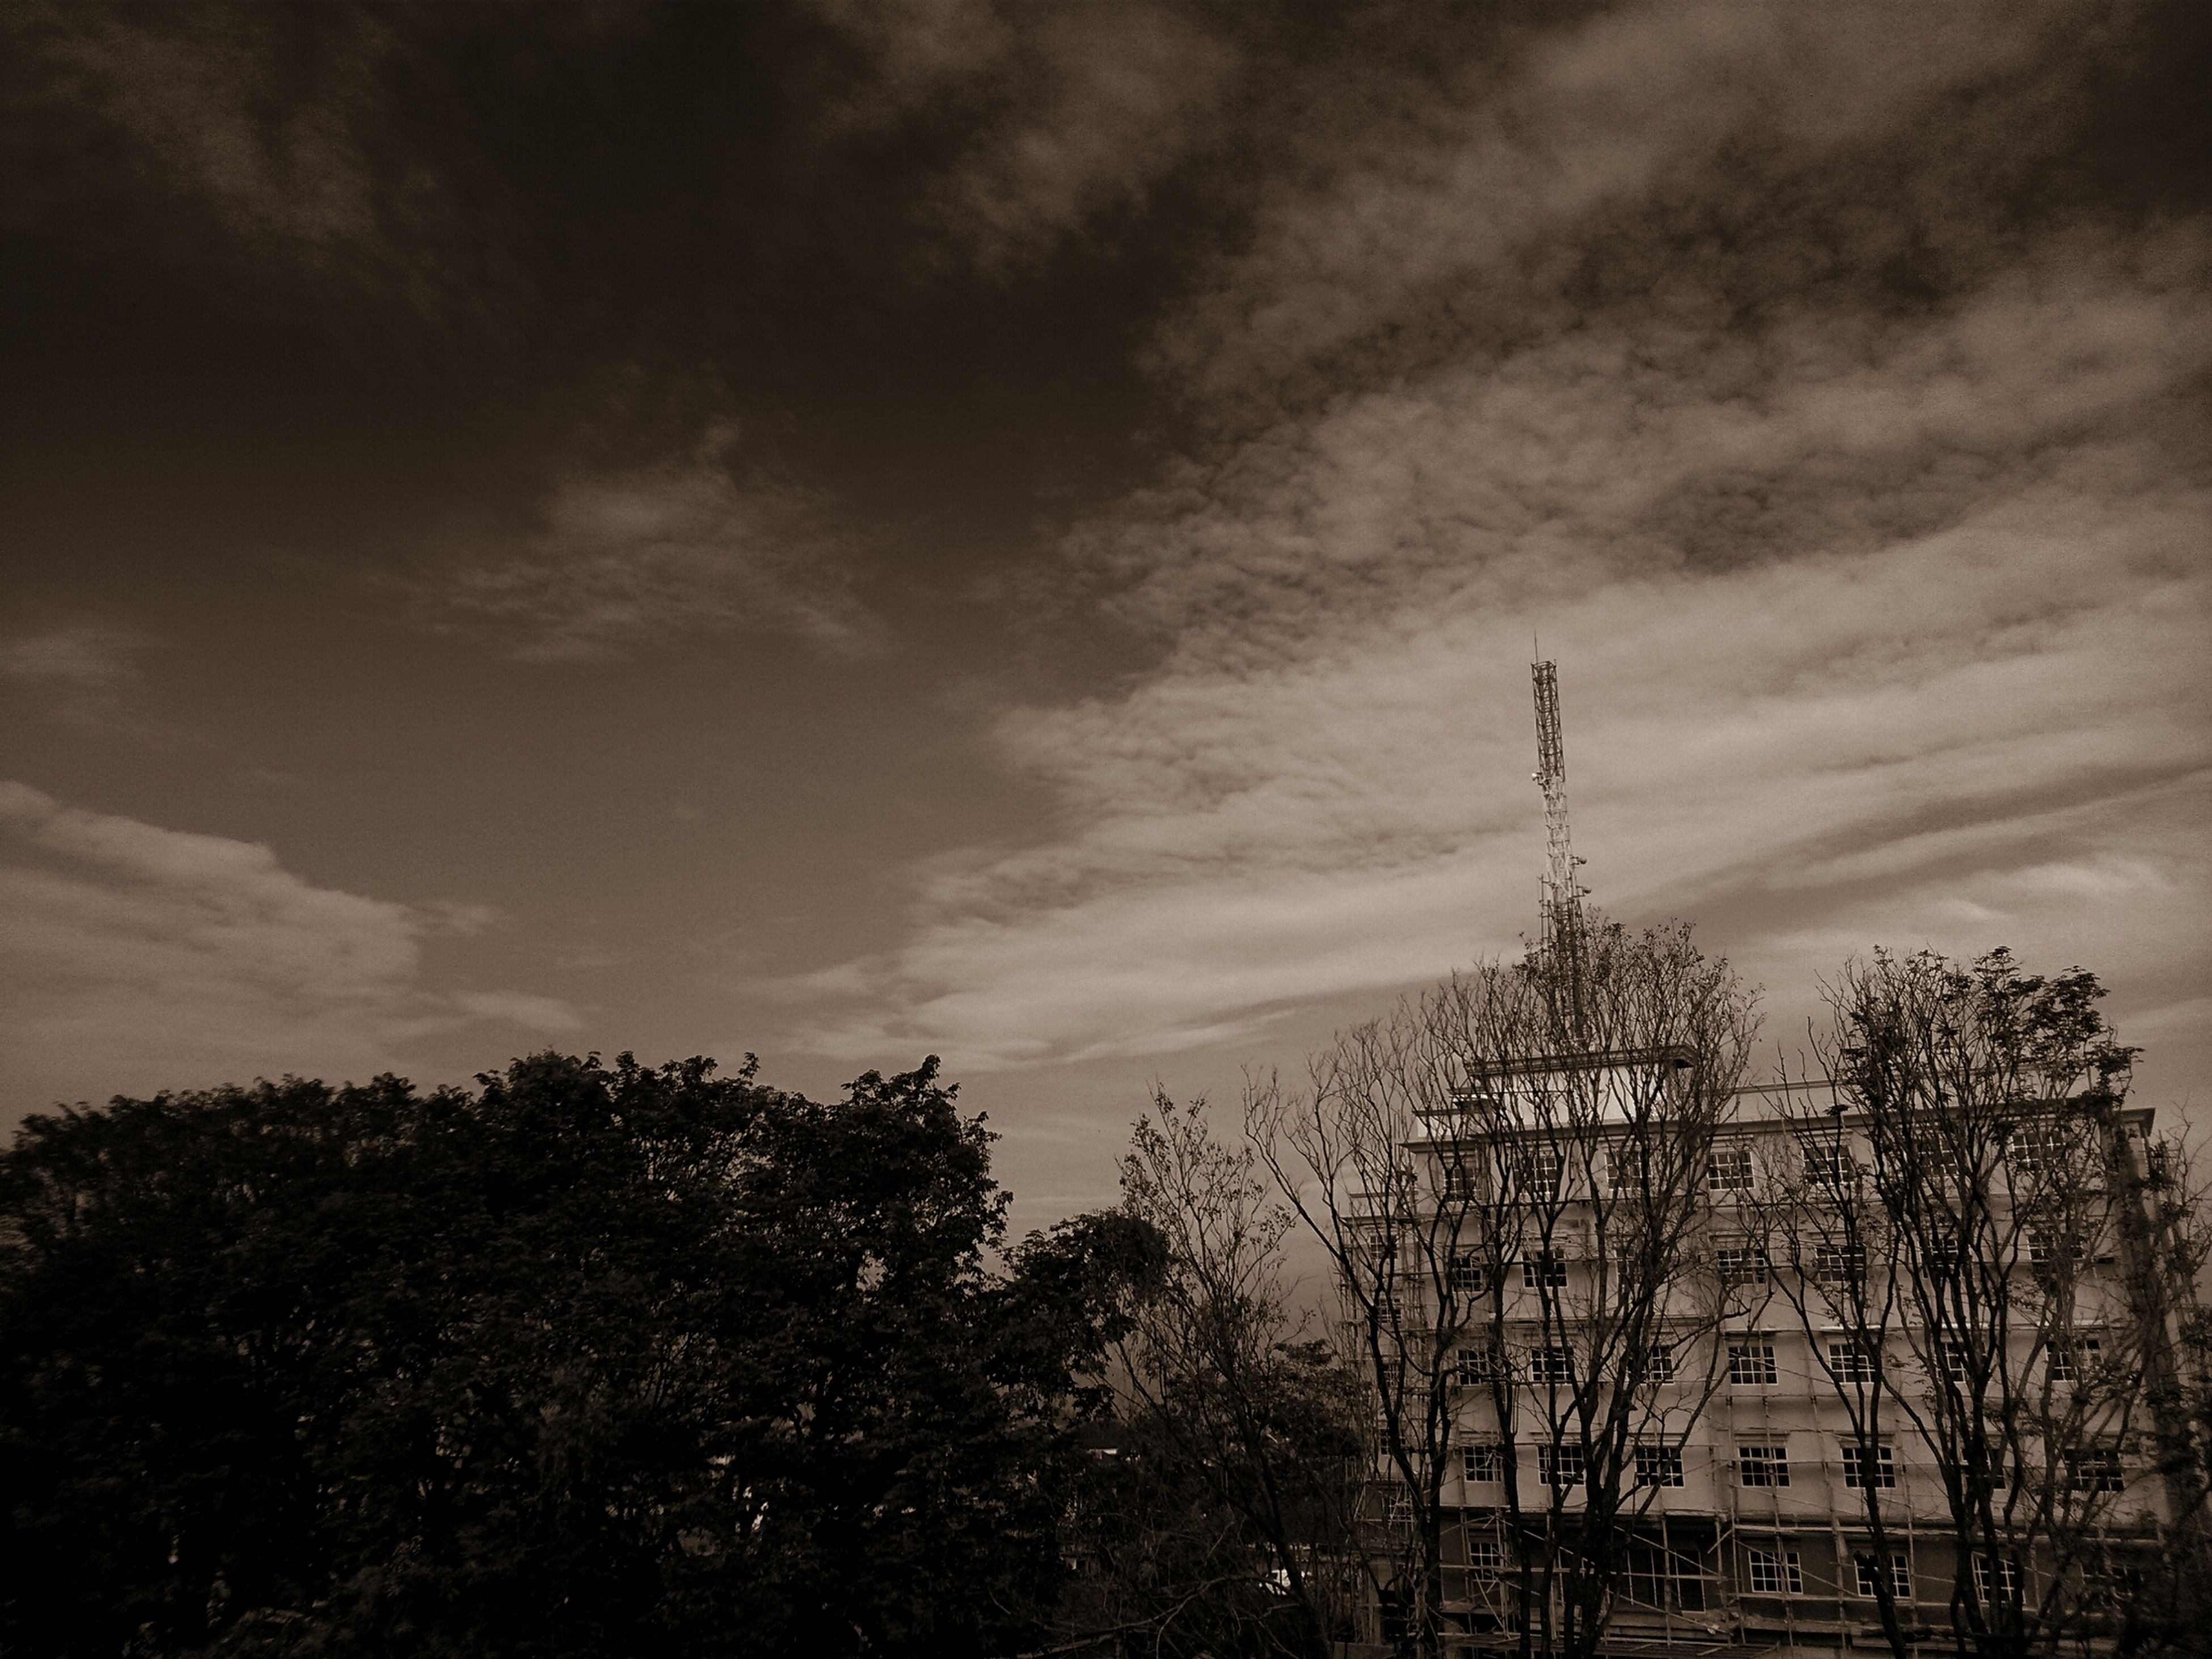 sky, tree, low angle view, cloud - sky, building exterior, built structure, architecture, cloudy, silhouette, cloud, growth, dusk, overcast, nature, weather, outdoors, no people, branch, city, bare tree